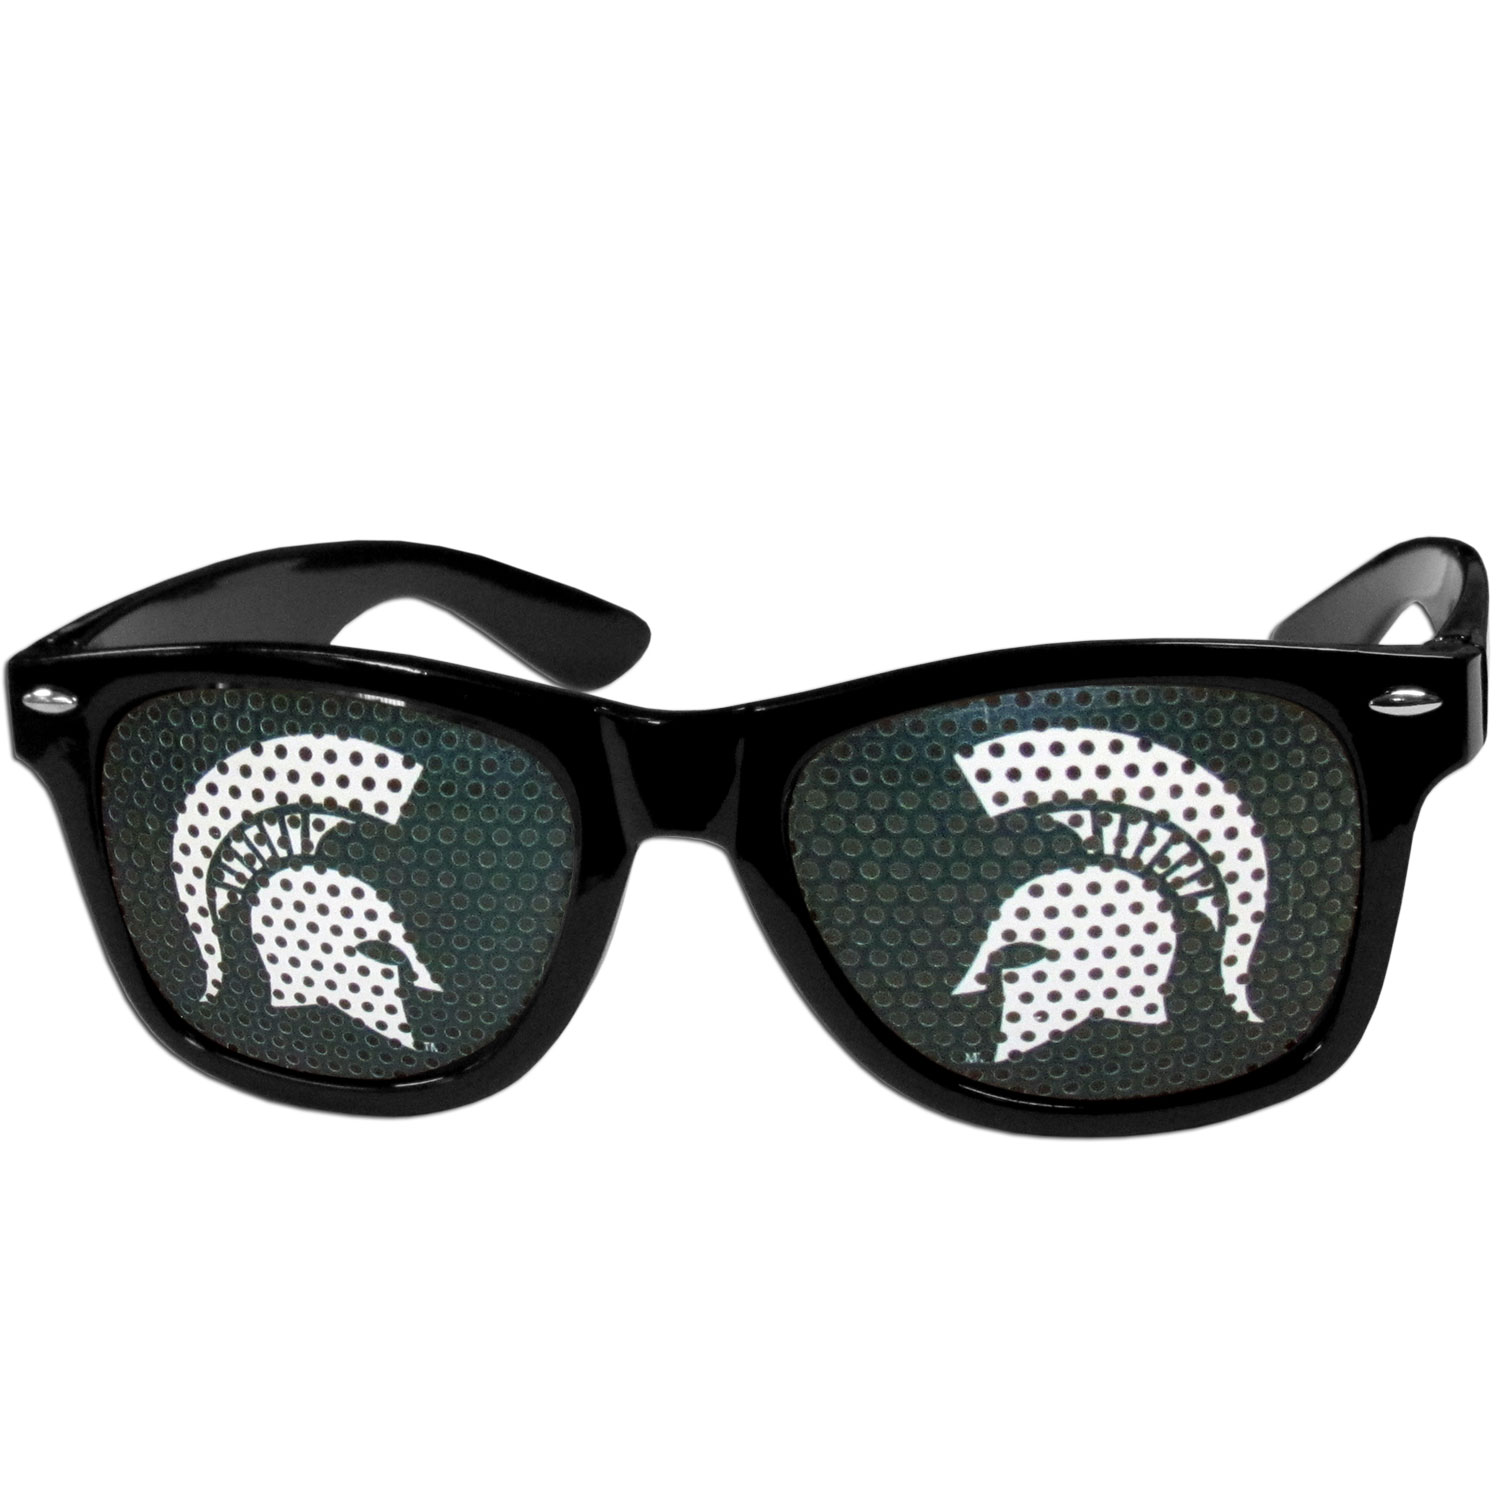 Michigan St. Spartans Game Day Shades - Our officially licensed game day shades are the perfect accessory for the devoted Michigan St. Spartans fan! The sunglasses have durable polycarbonate frames with flex hinges for comfort and damage resistance. The lenses feature brightly colored team clings that are perforated for visibility.